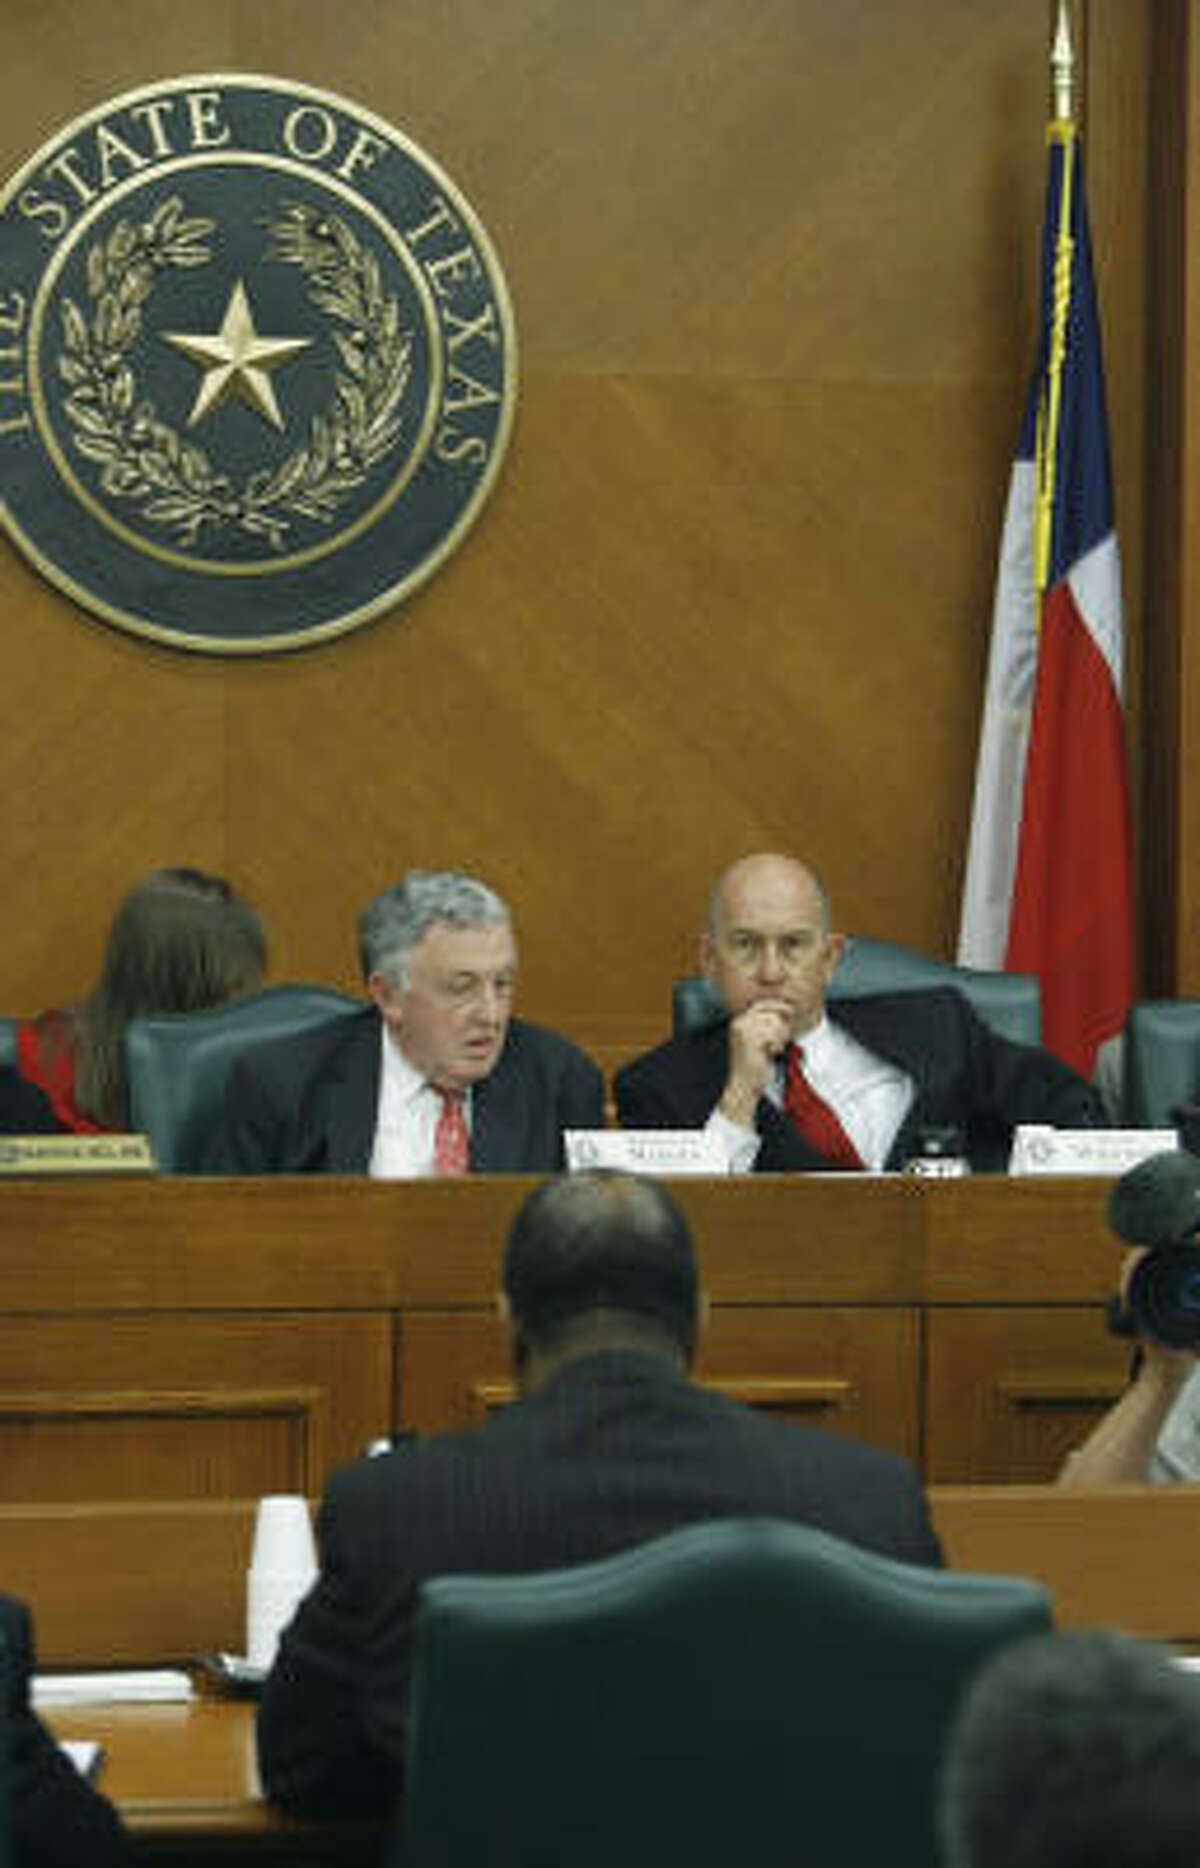 Ed Owens, foreground, interim executive director of the Texas Youth Commission, speaks during a committee meeting on March 8 in Austin. Rep. Jerry Madden, R-Plano, left, and Sen. John Whitmire, D-Houston, listen.